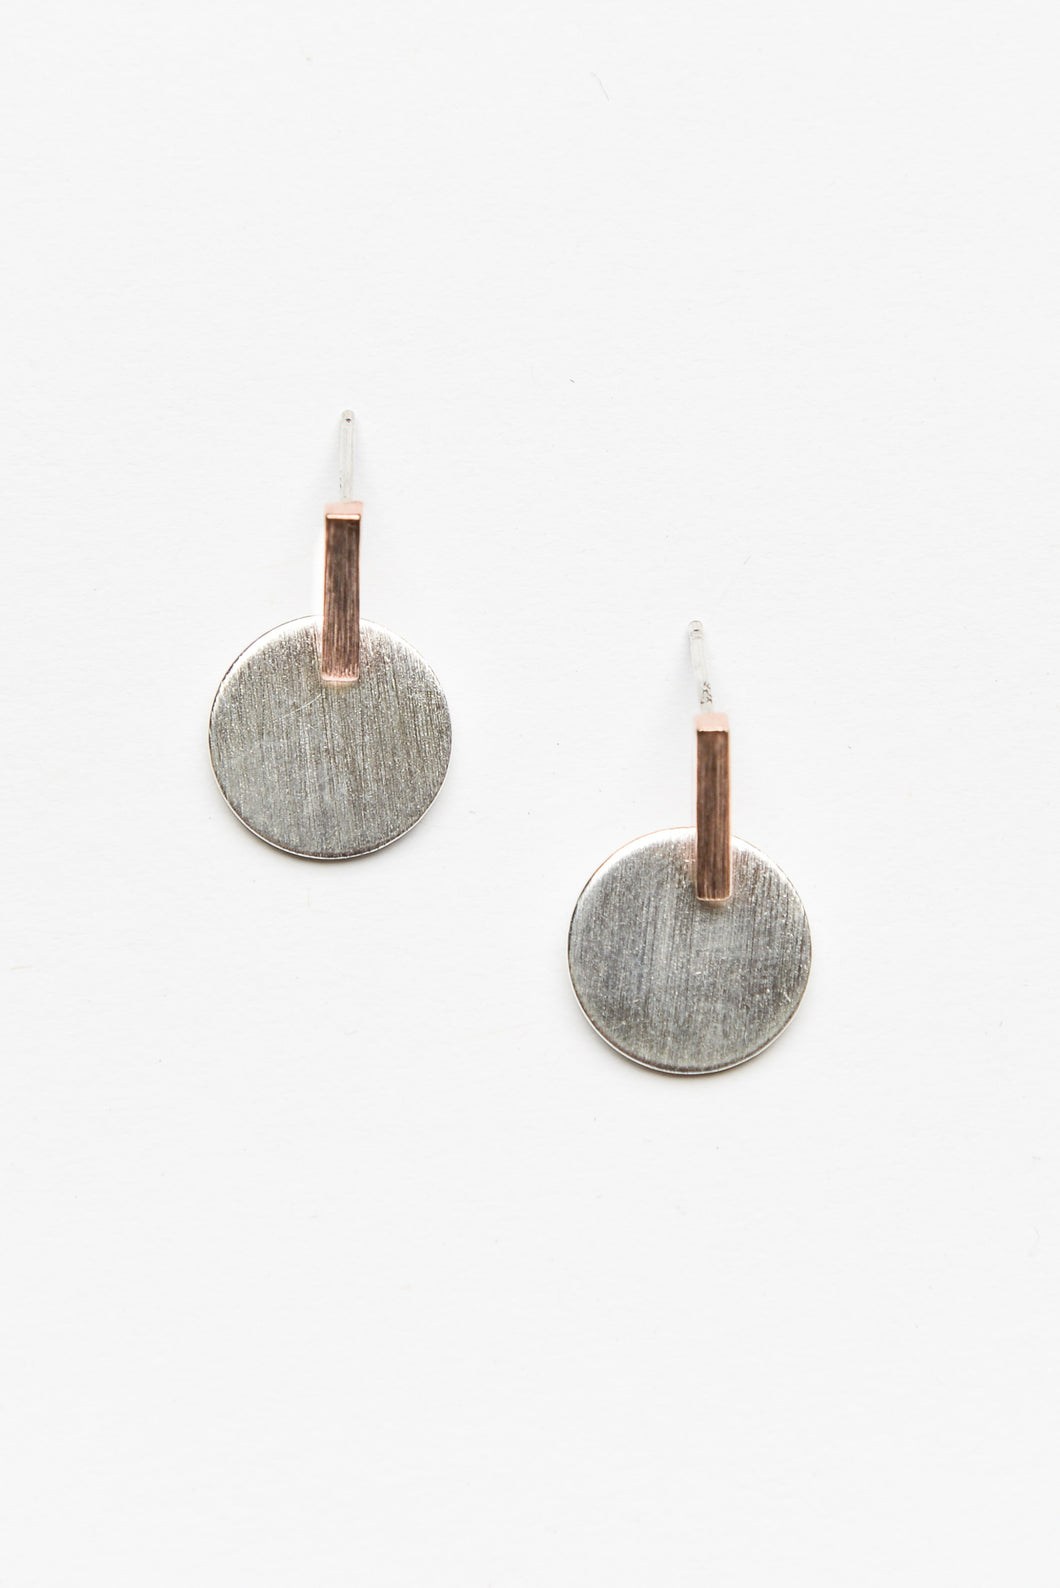 Rose Gold and Silver Bar Earring - Blue Bungalow